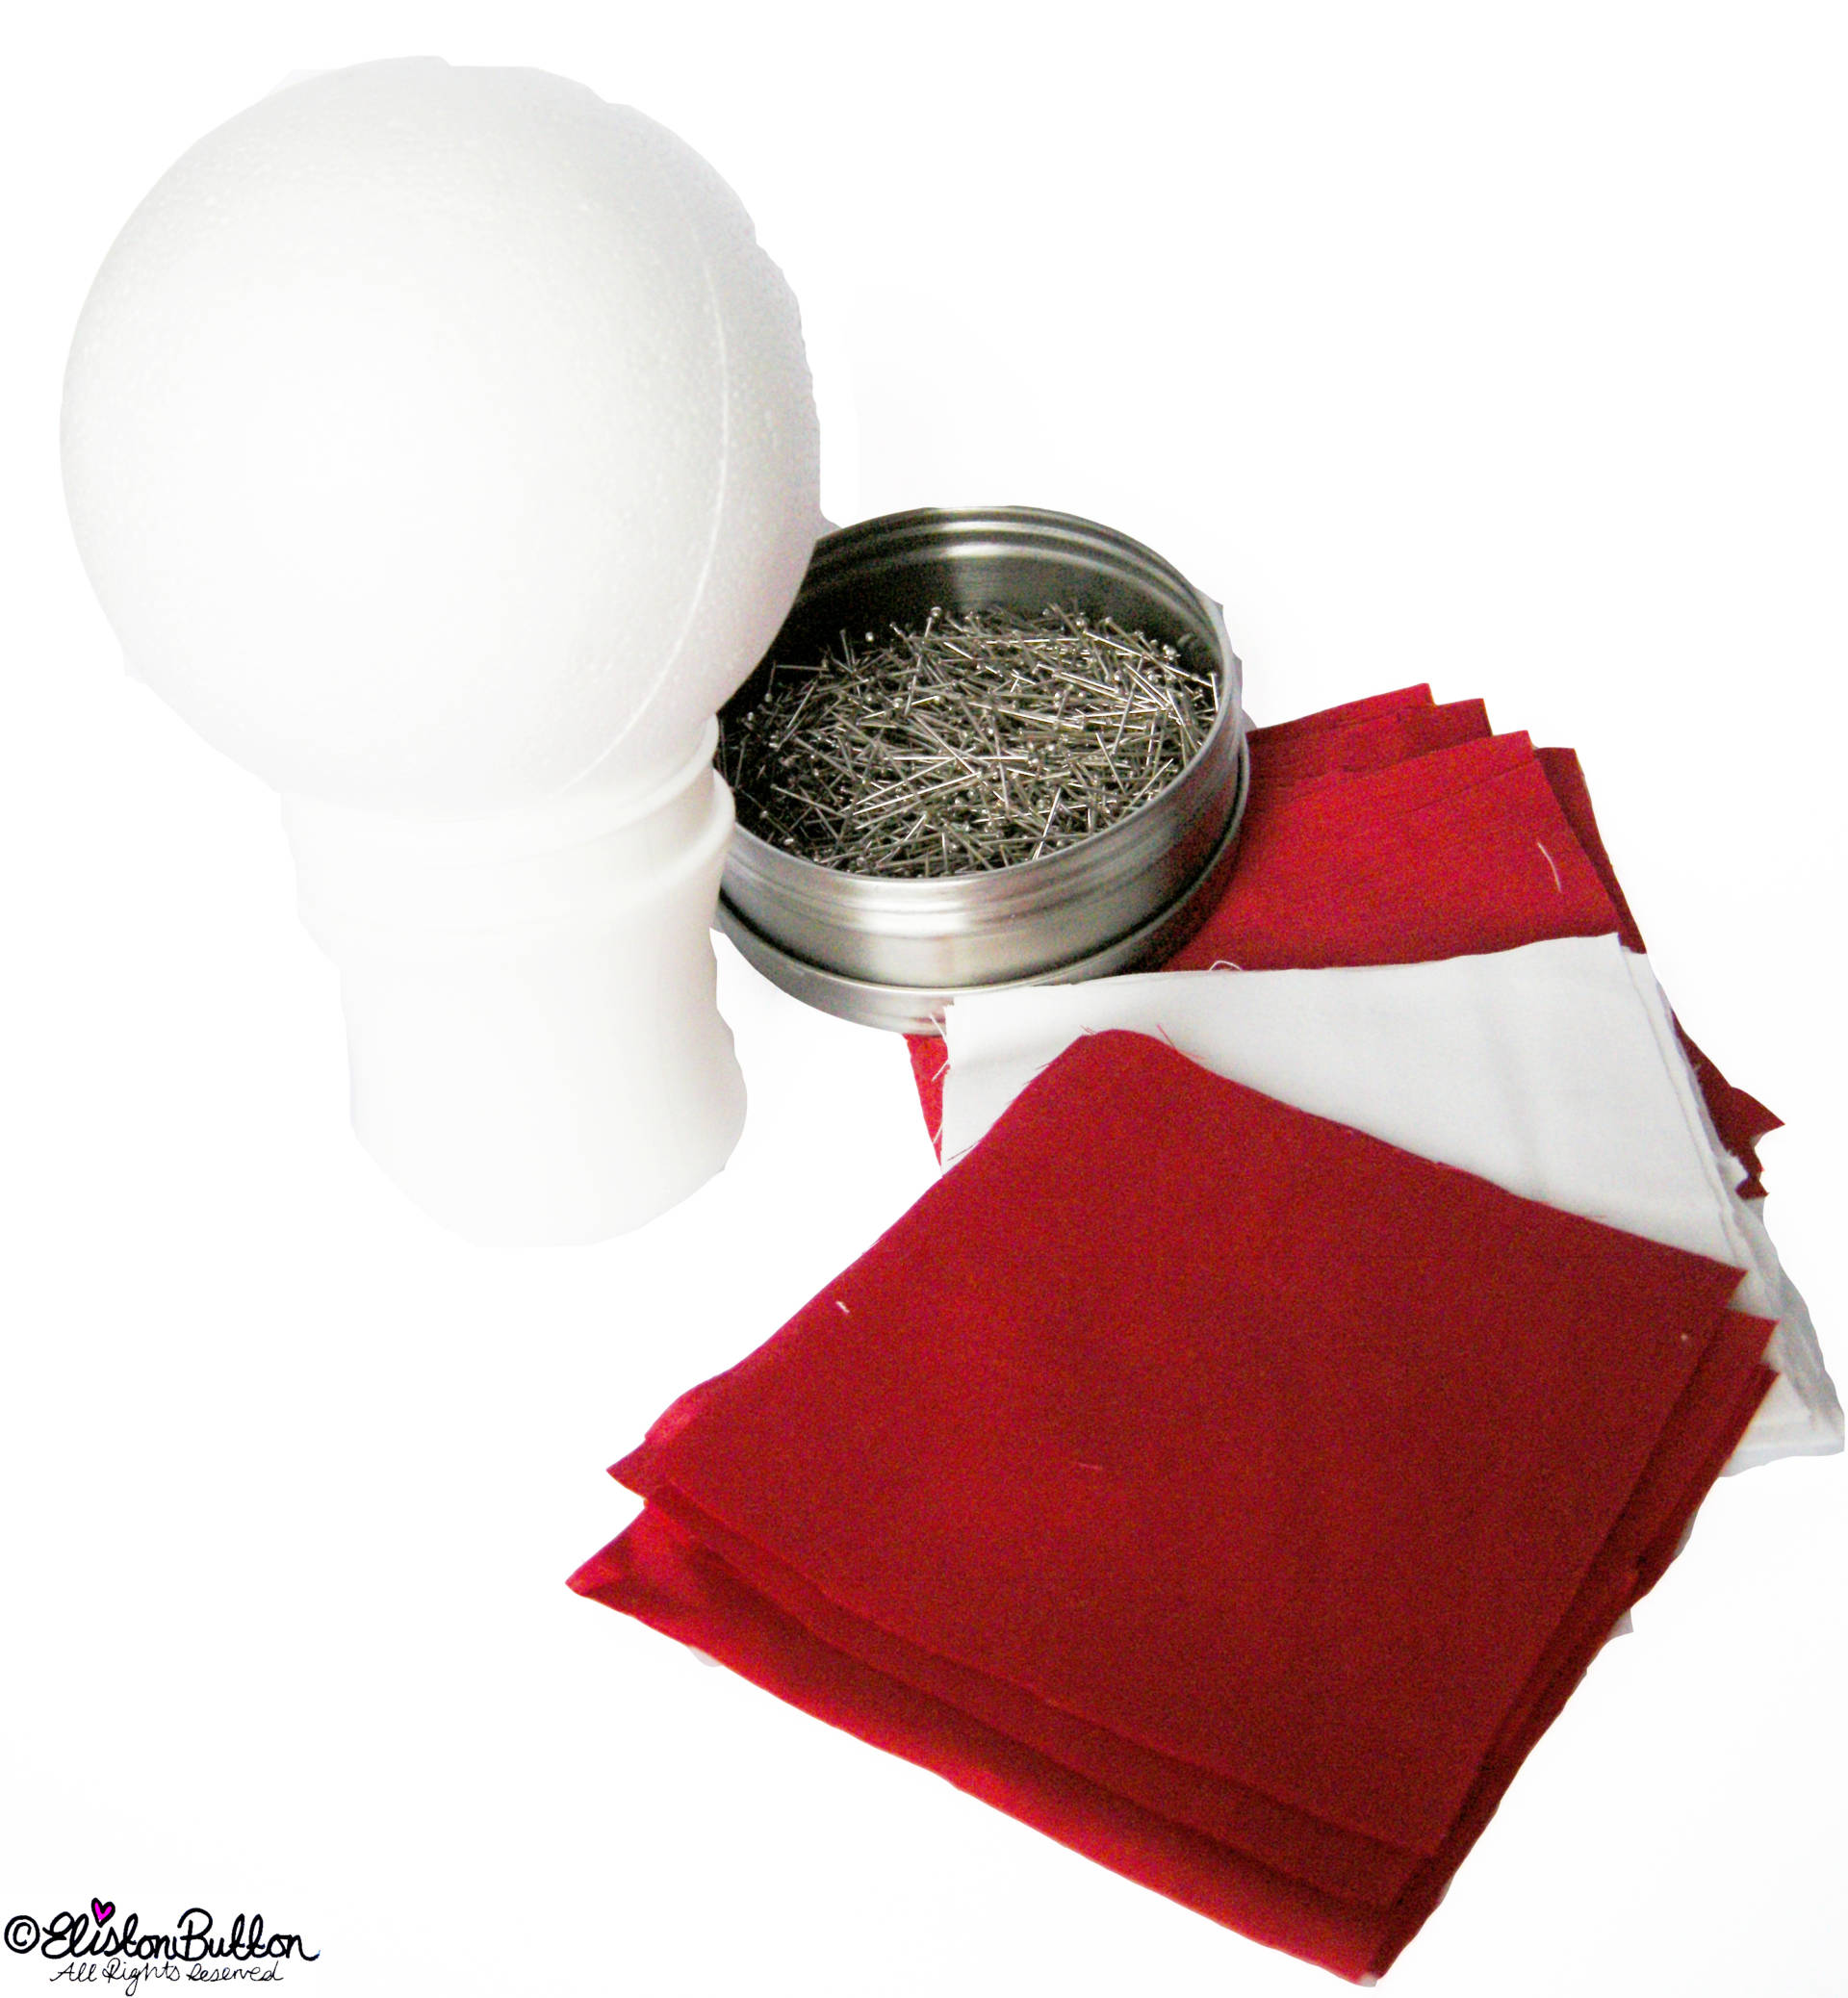 Supplies Needed to Make a Quilted Christmas Bauble - Quilted Christmas Baubles - A Tutorial at www.elistonbutton.com - Eliston Button - That Crafty Kid – Art, Design, Craft & Adventure.